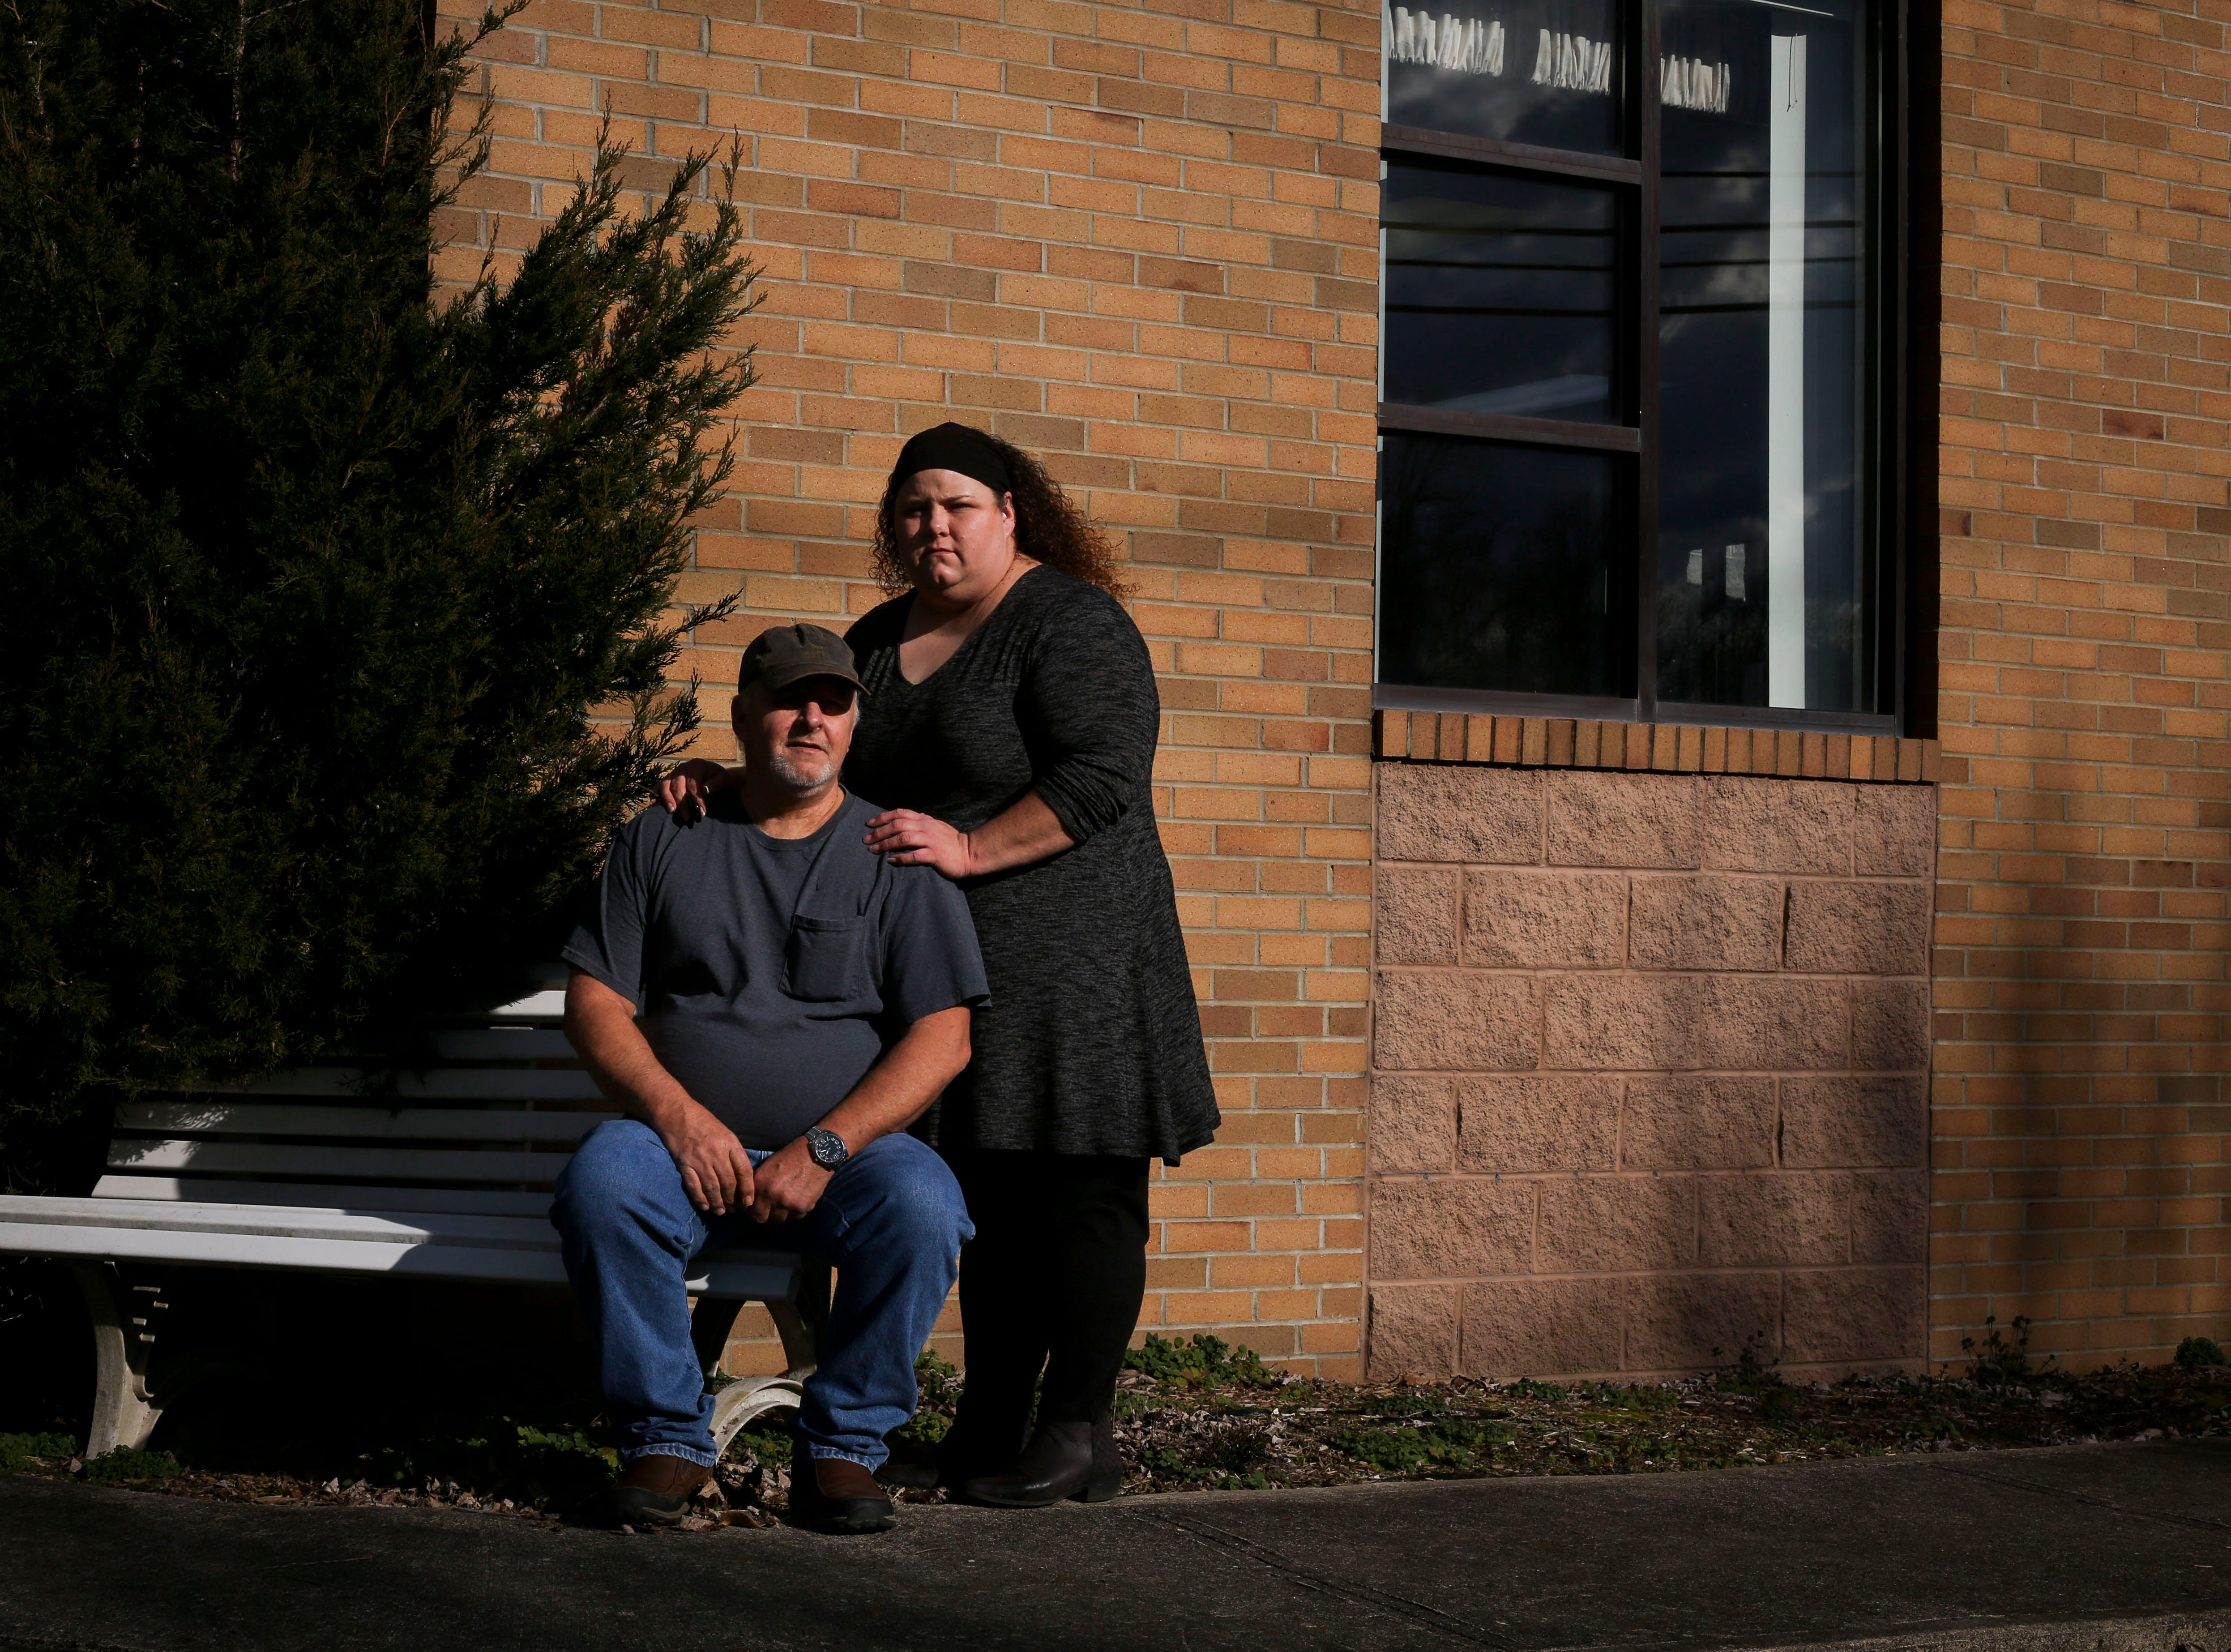 Tim Ramey, left, and Brandy Stafford, right, outside the health department in Inez, Kentucky, on Jan. 8, 2019. They lost James Ramey, their son and brother, respectively, to complications due to hepatitis A in November 2018.